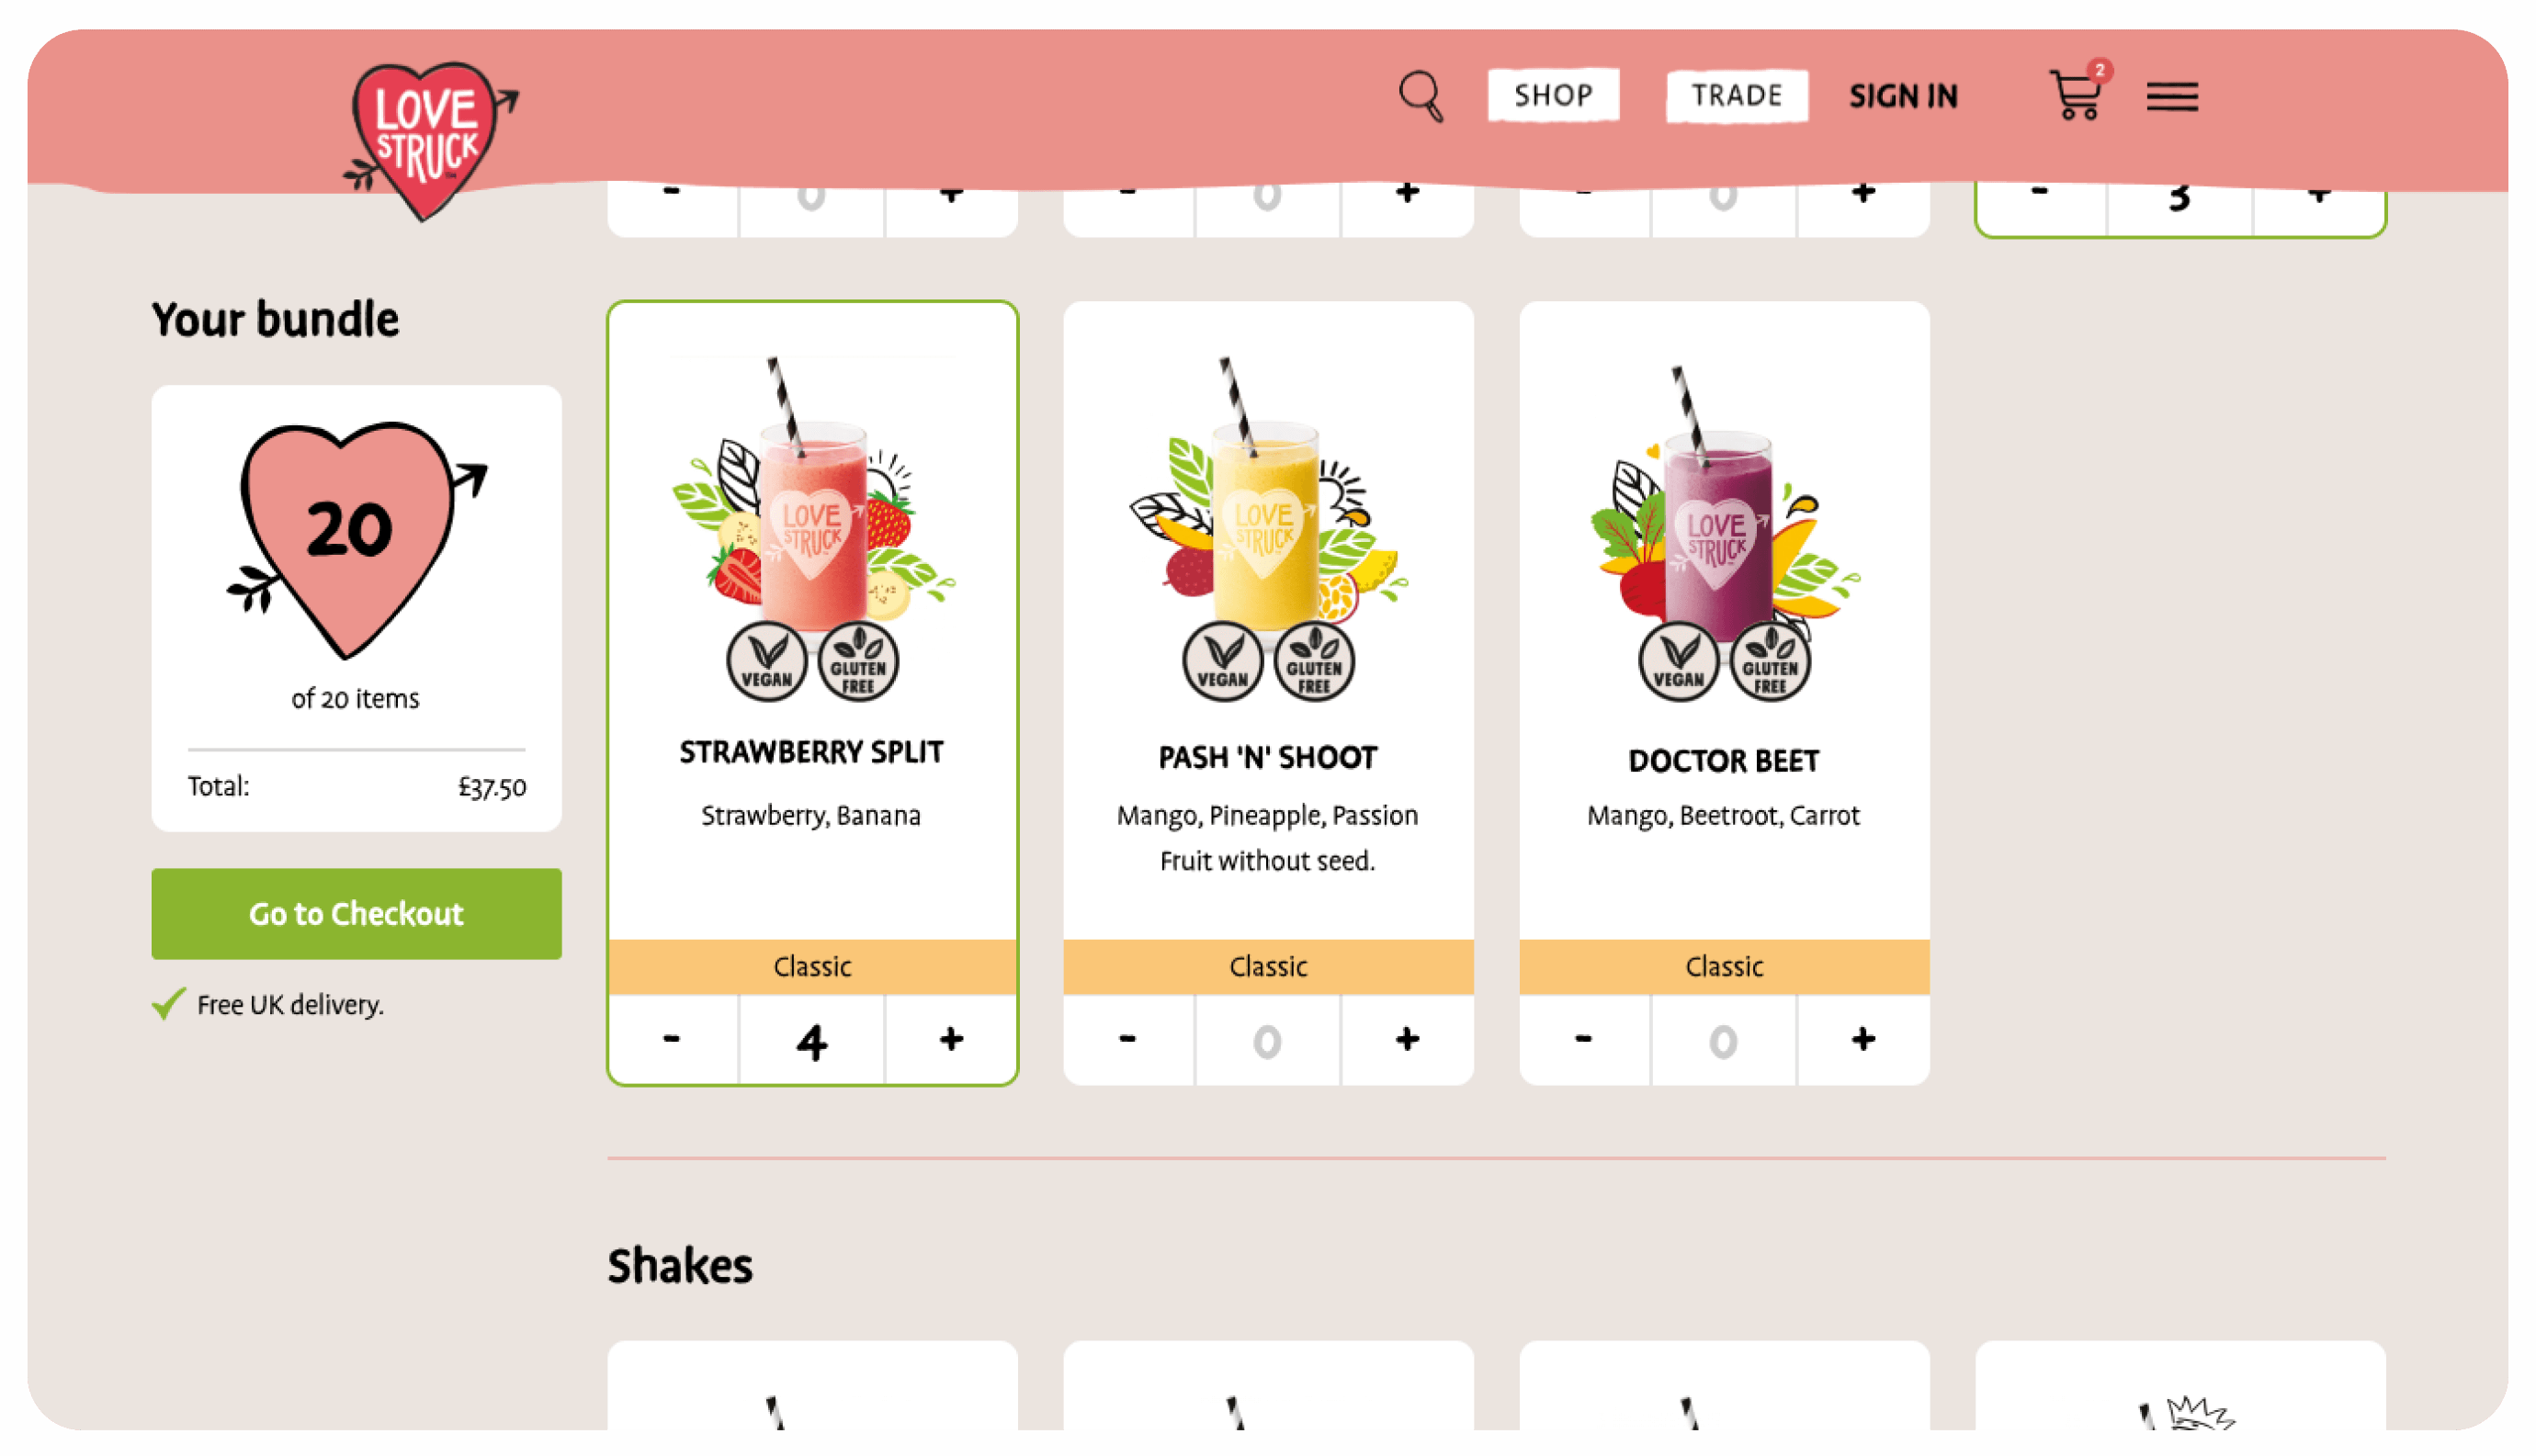 increased conversions of 200% with design changes and build for Love Struck